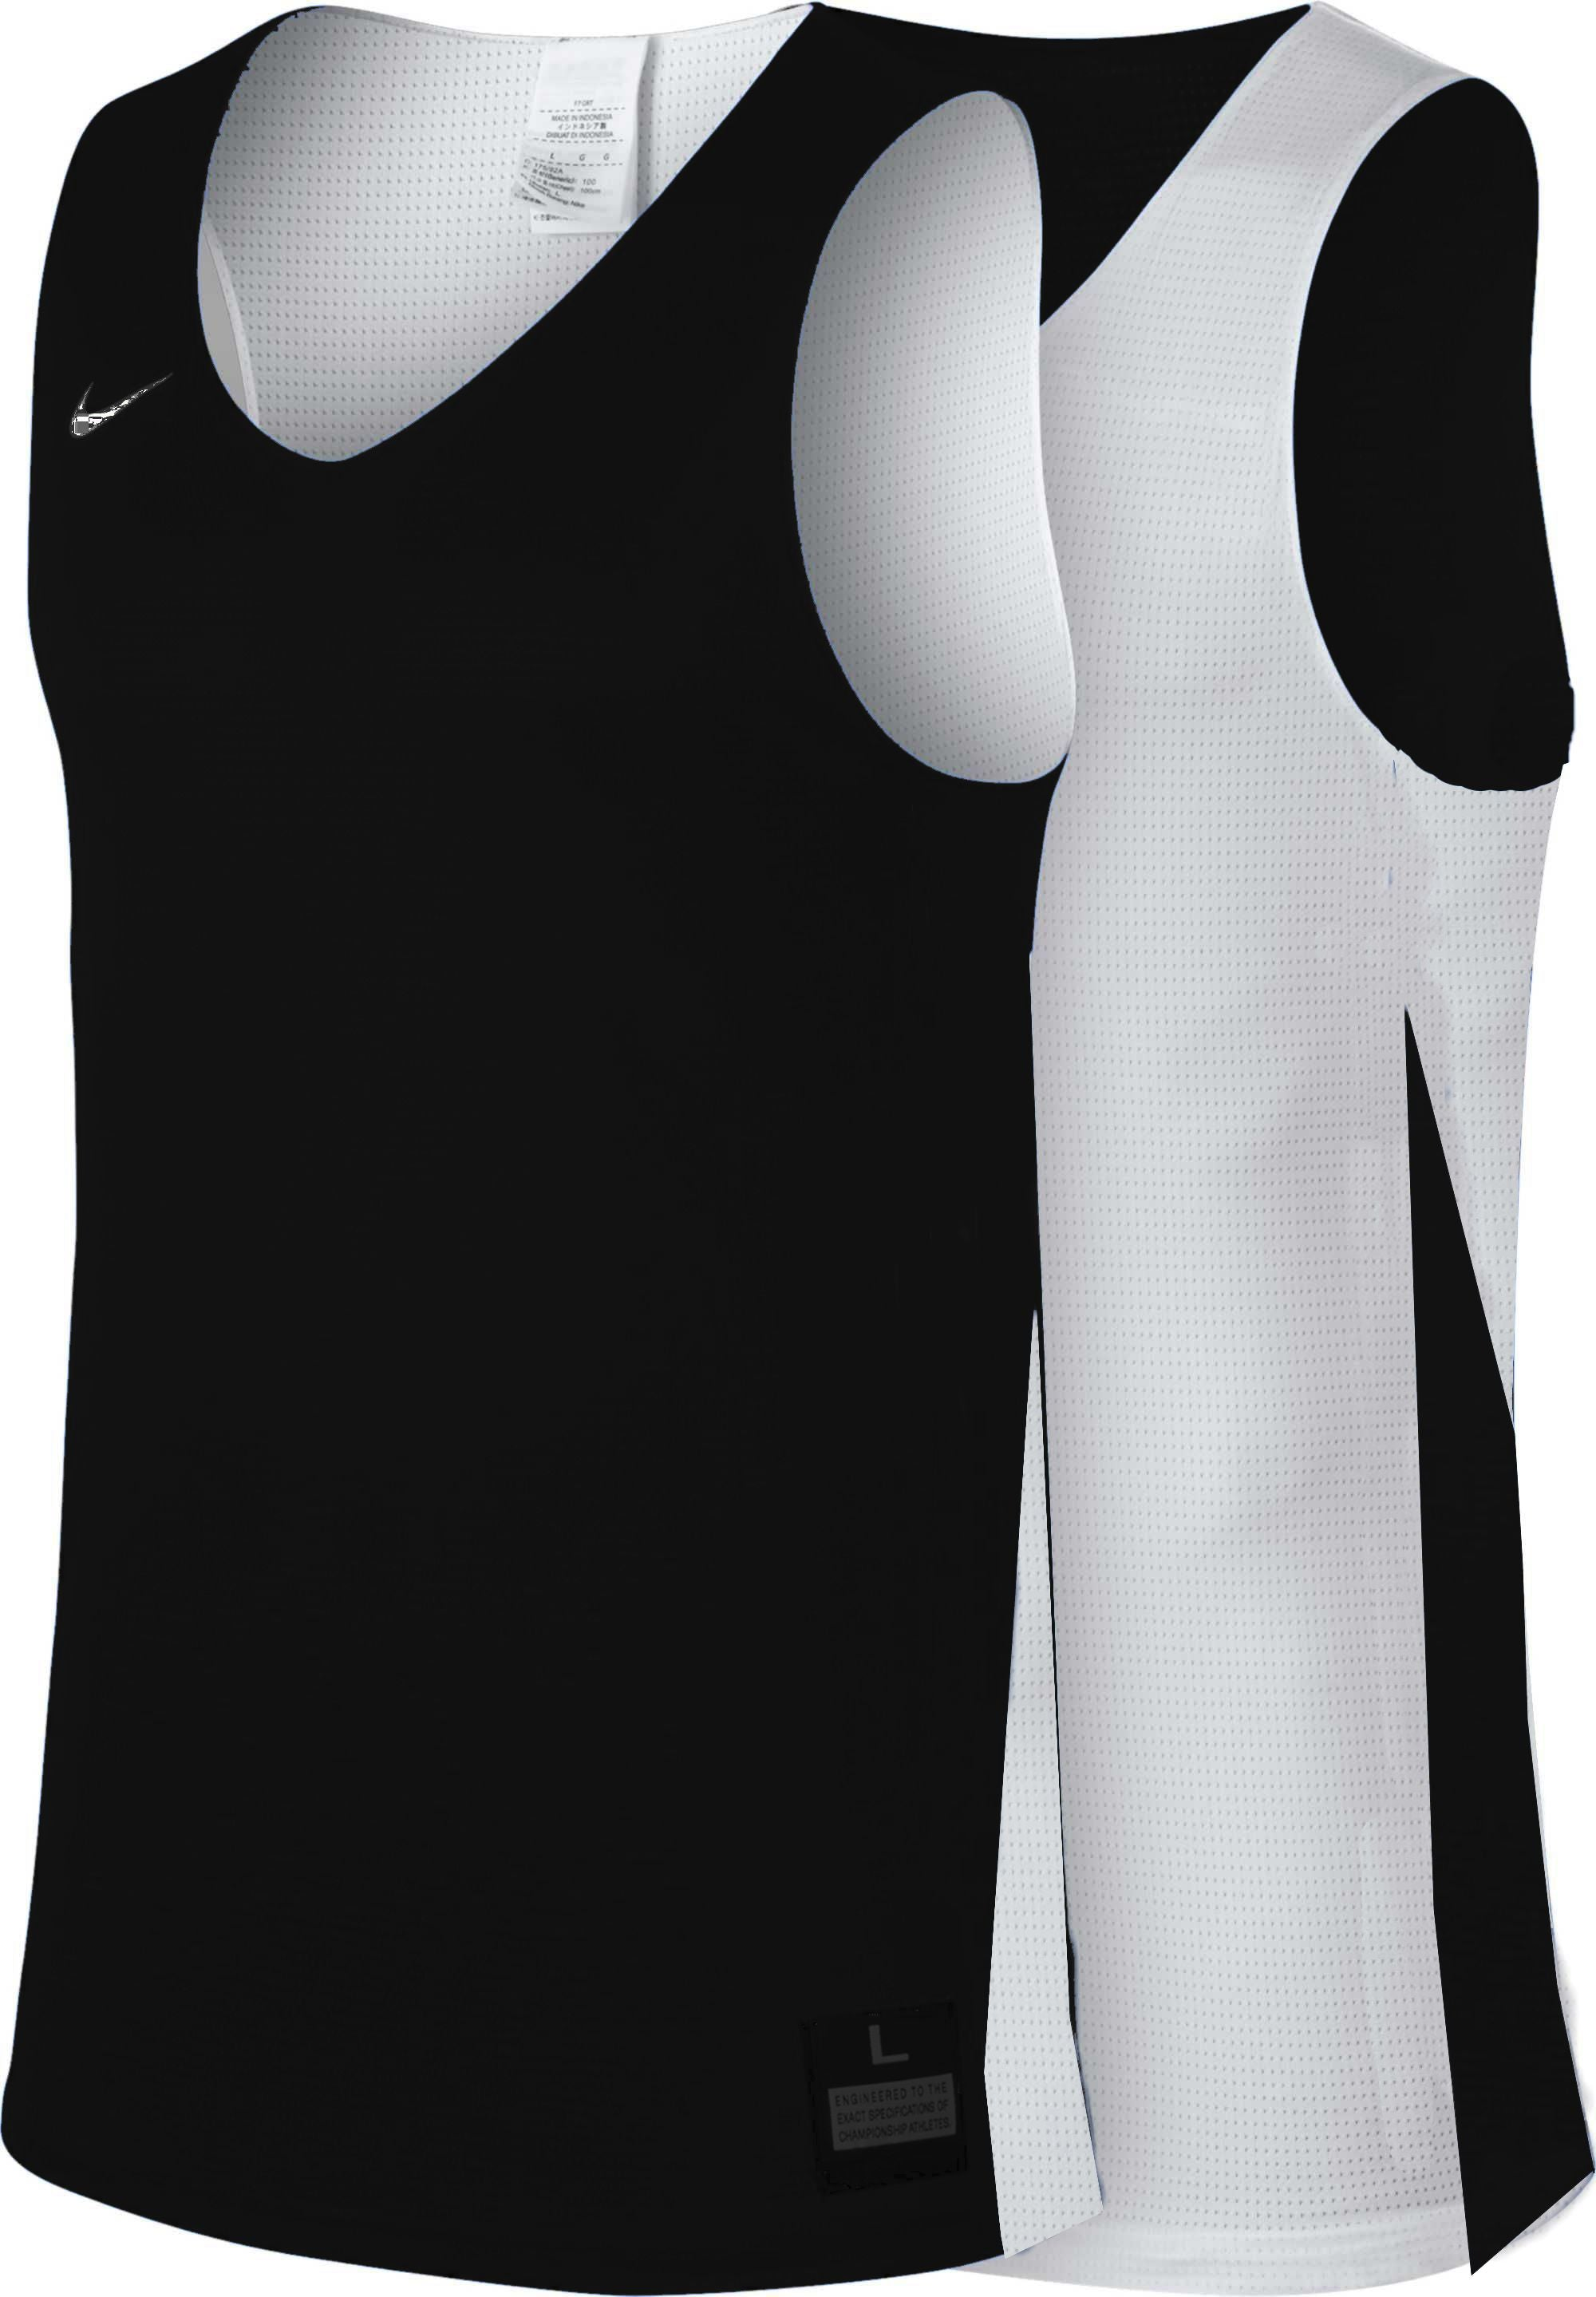 Teamwear - Nike Women's Team Basketball Reversible Jersey - Black/White - NK-NT0213-010